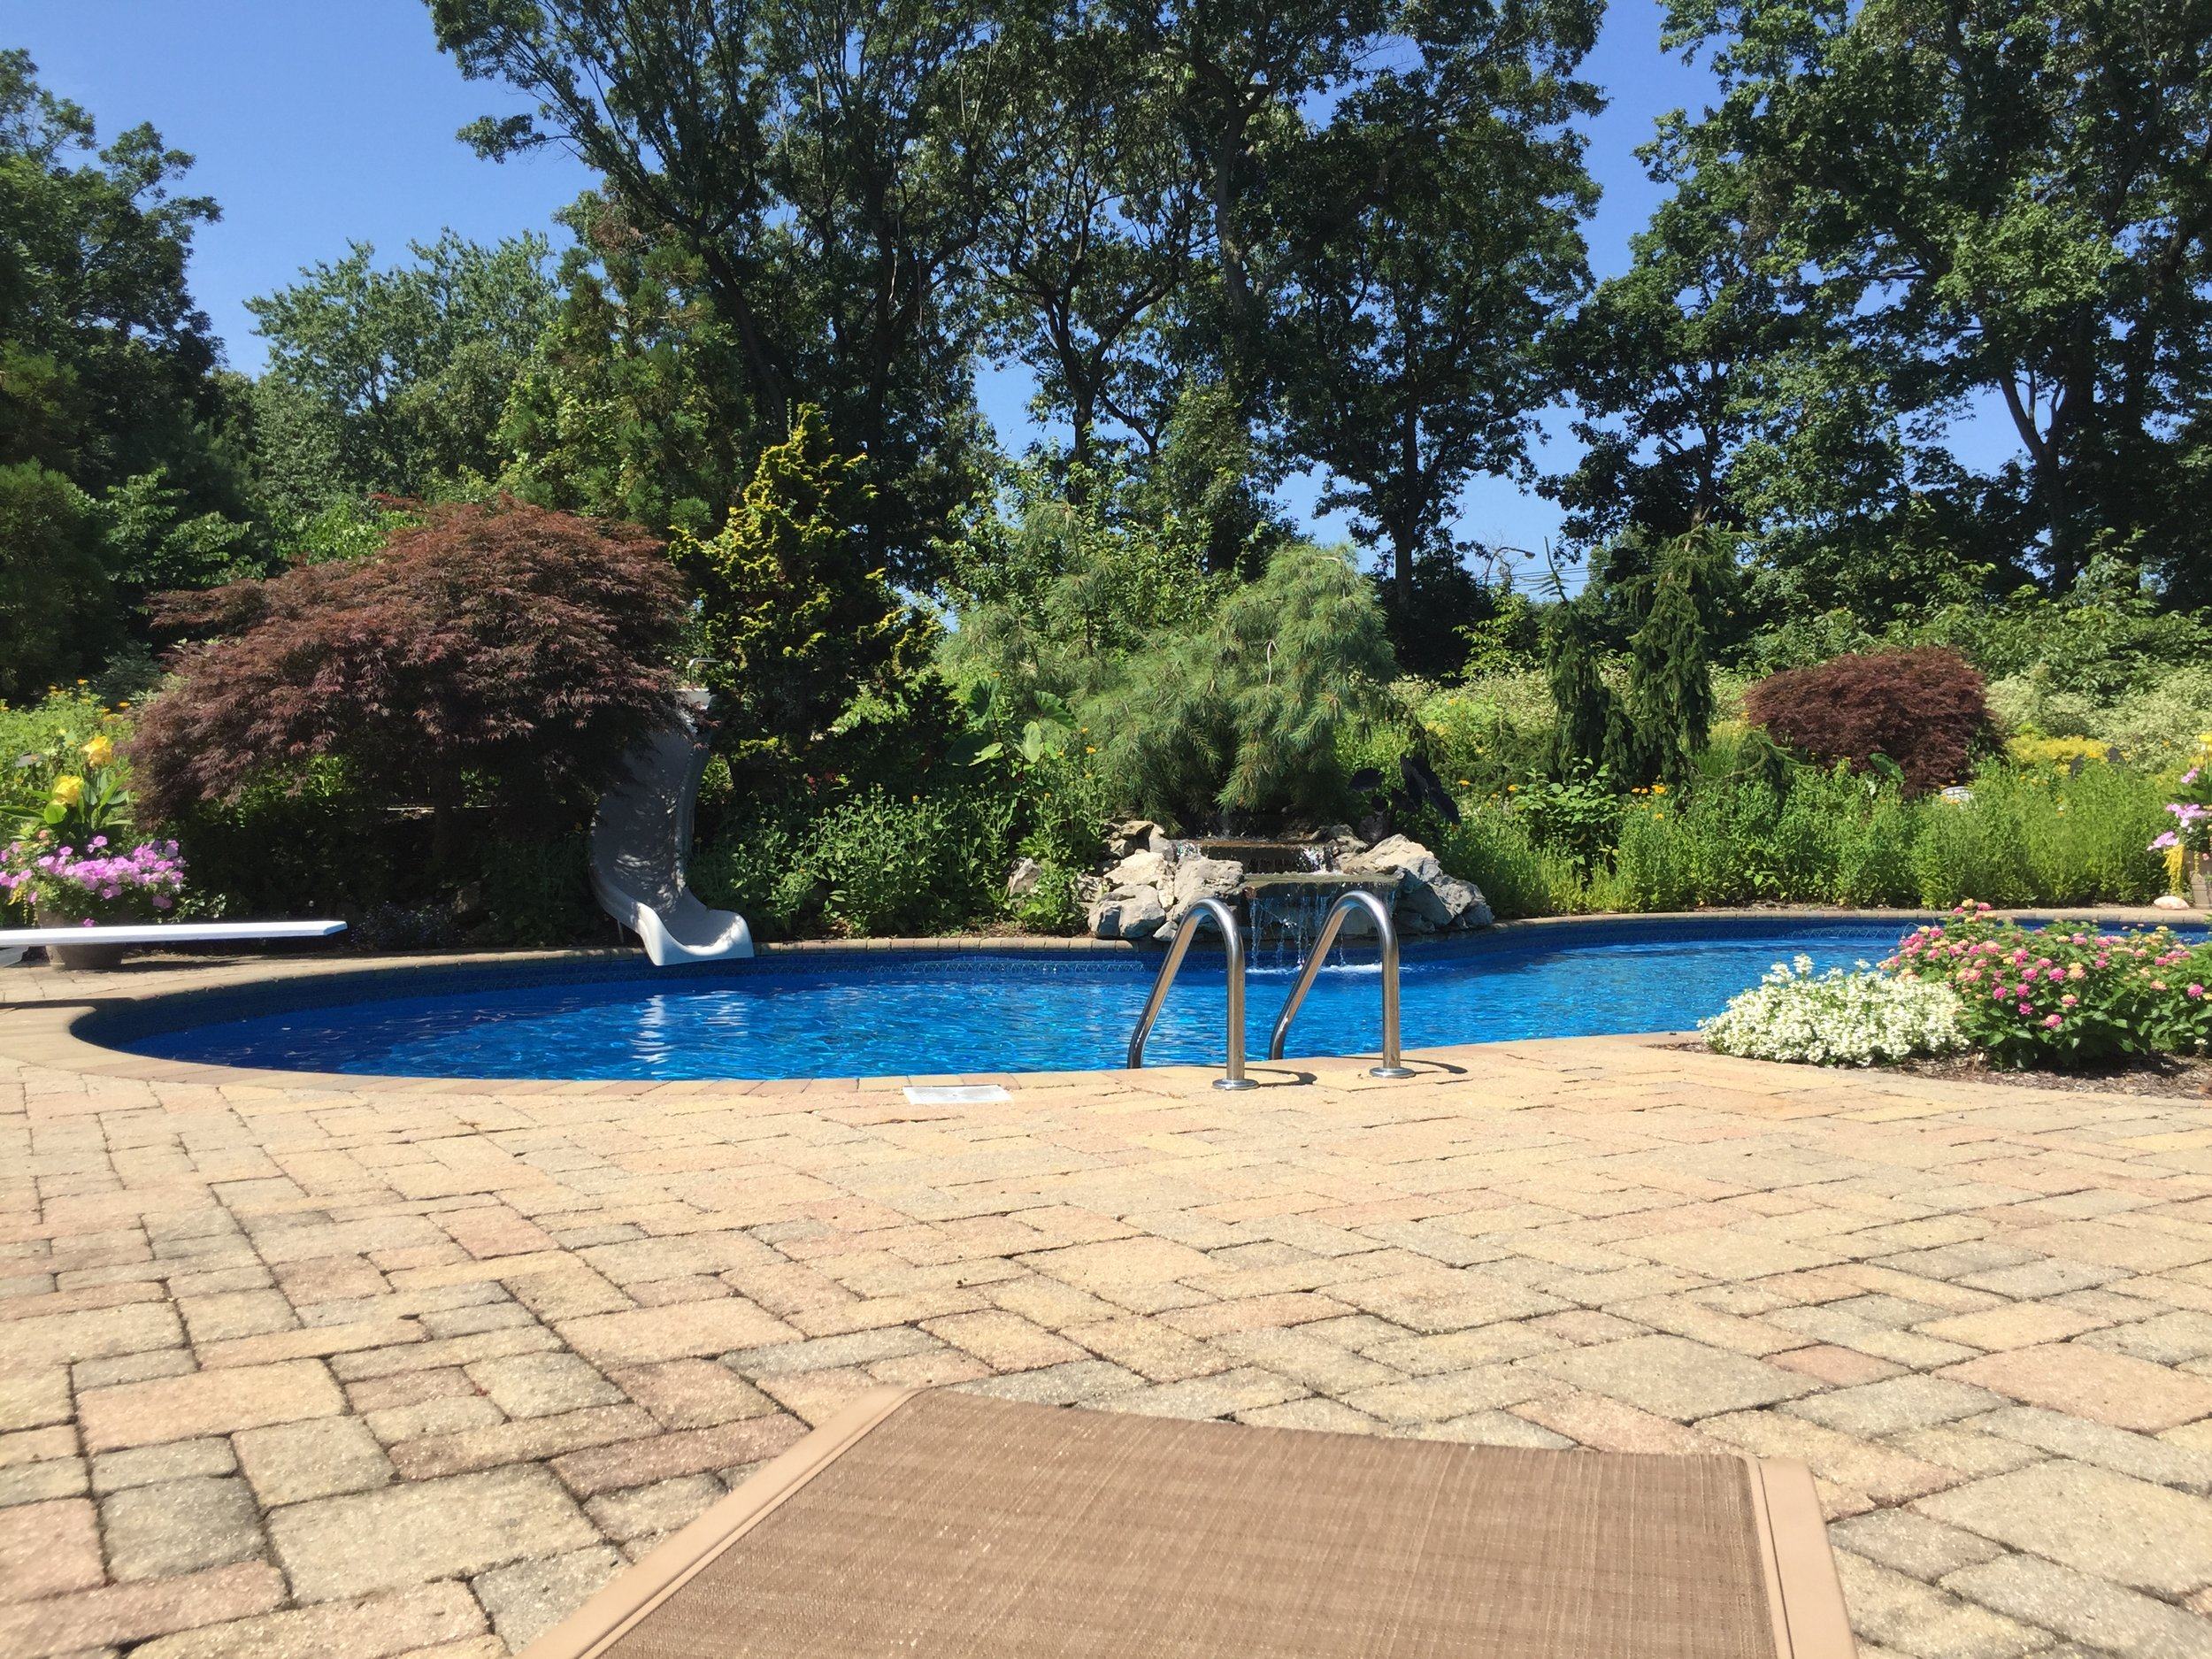 Top landscape design company with pool waterfallin Long Island, NY